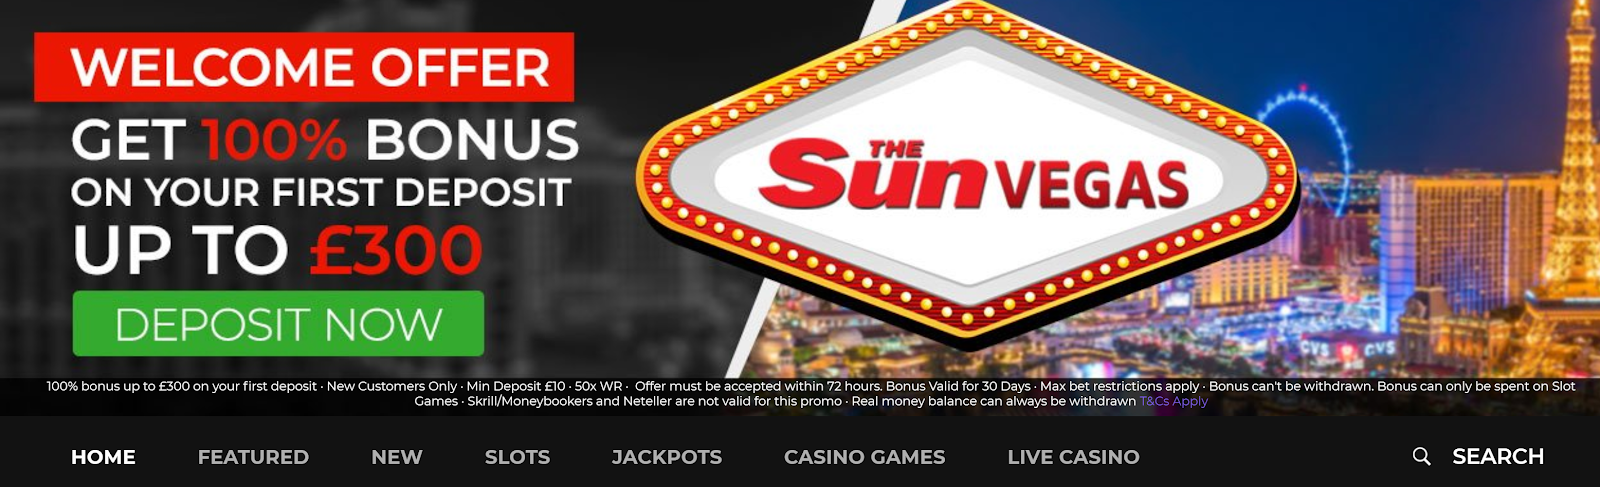 The Sun Vegas Casino has a first deposit cash welcome offer of 100% for deposits up to £300